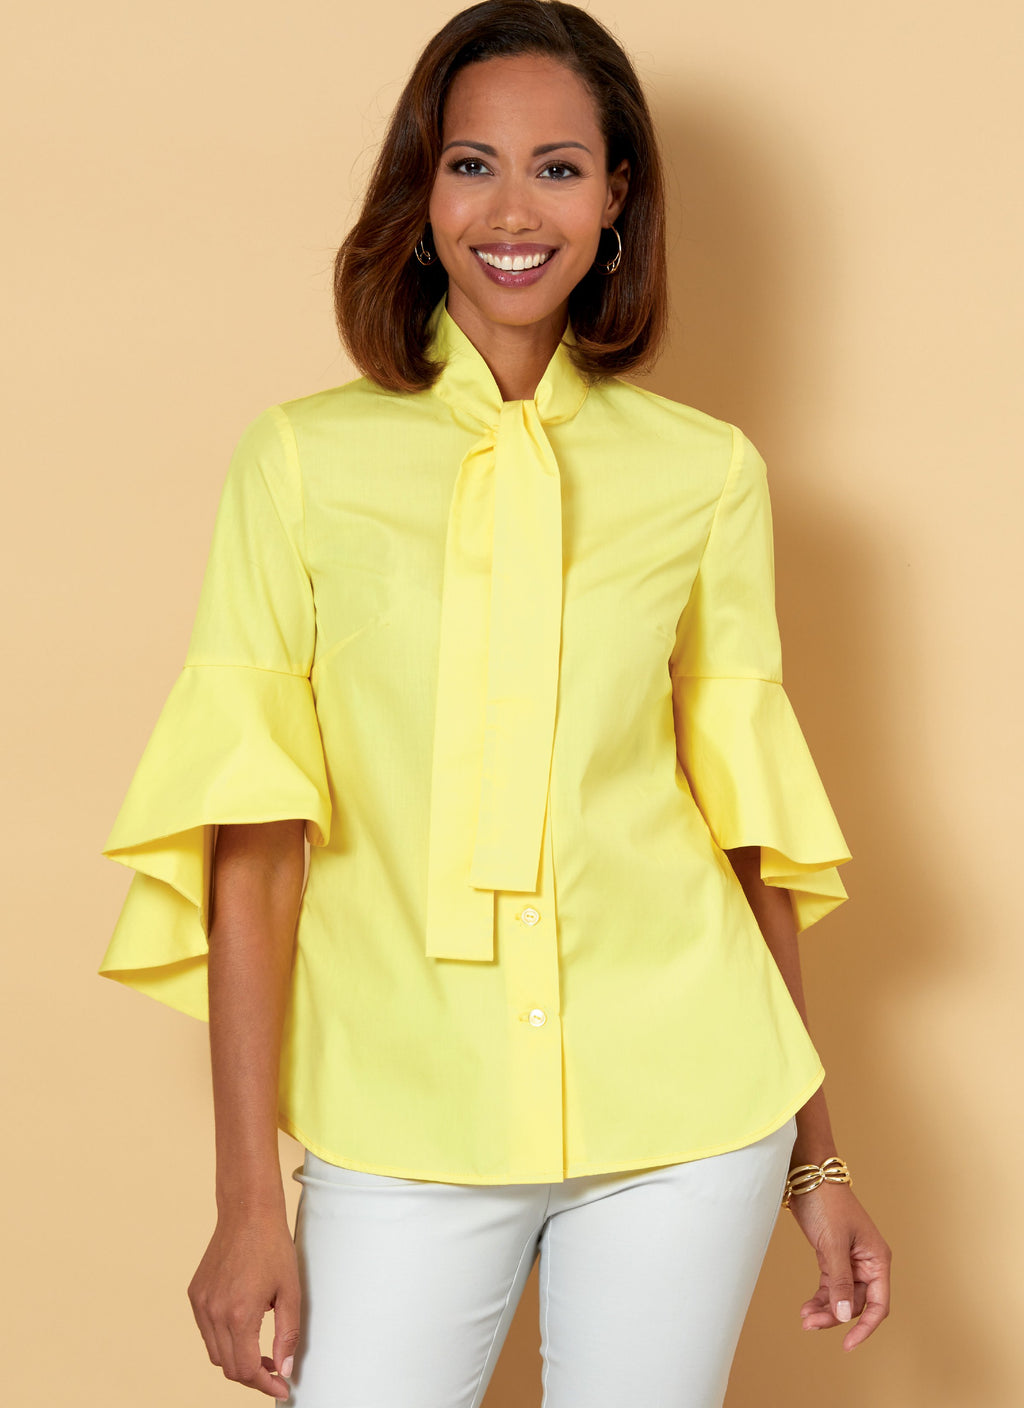 Butterick B6665 Top Sewing Pattern